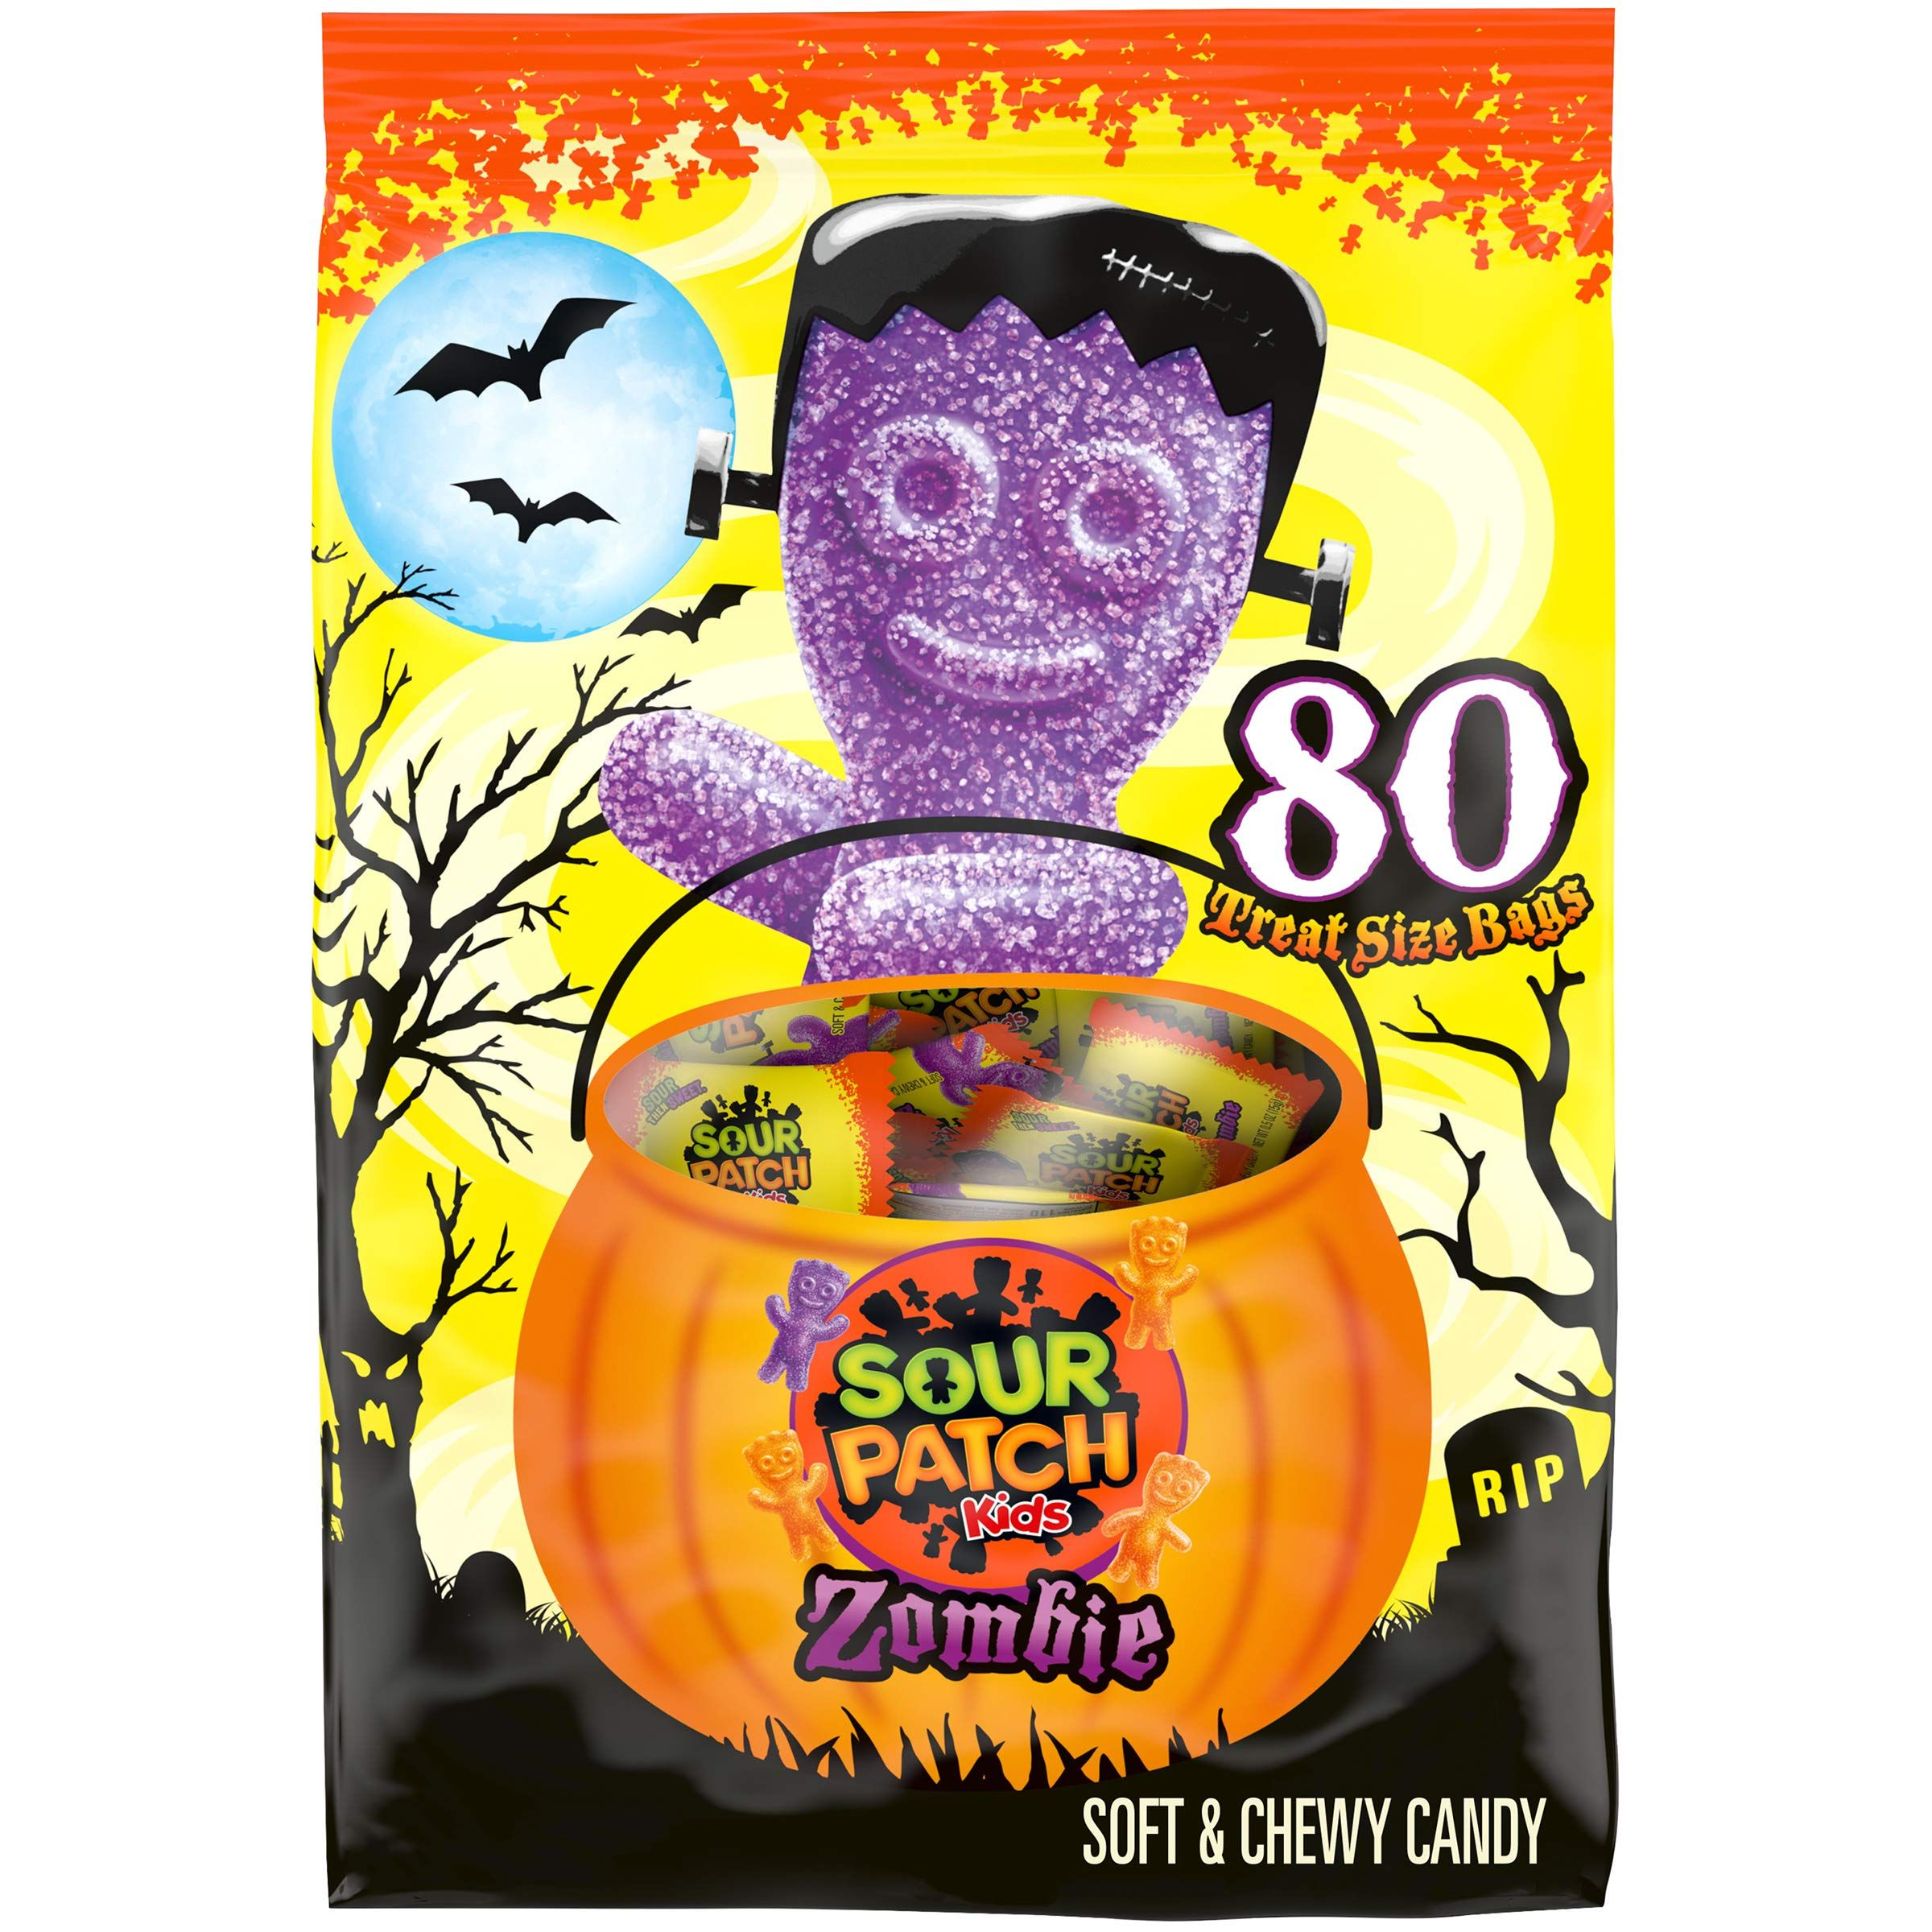 Sour Patch Kids Zombie Halloween Candy 80 Trick Or Treat Size Packs 0 5 Oz Halloween Party Supplies Sour Patch Kids Sour Patch Halloween Treats For Kids